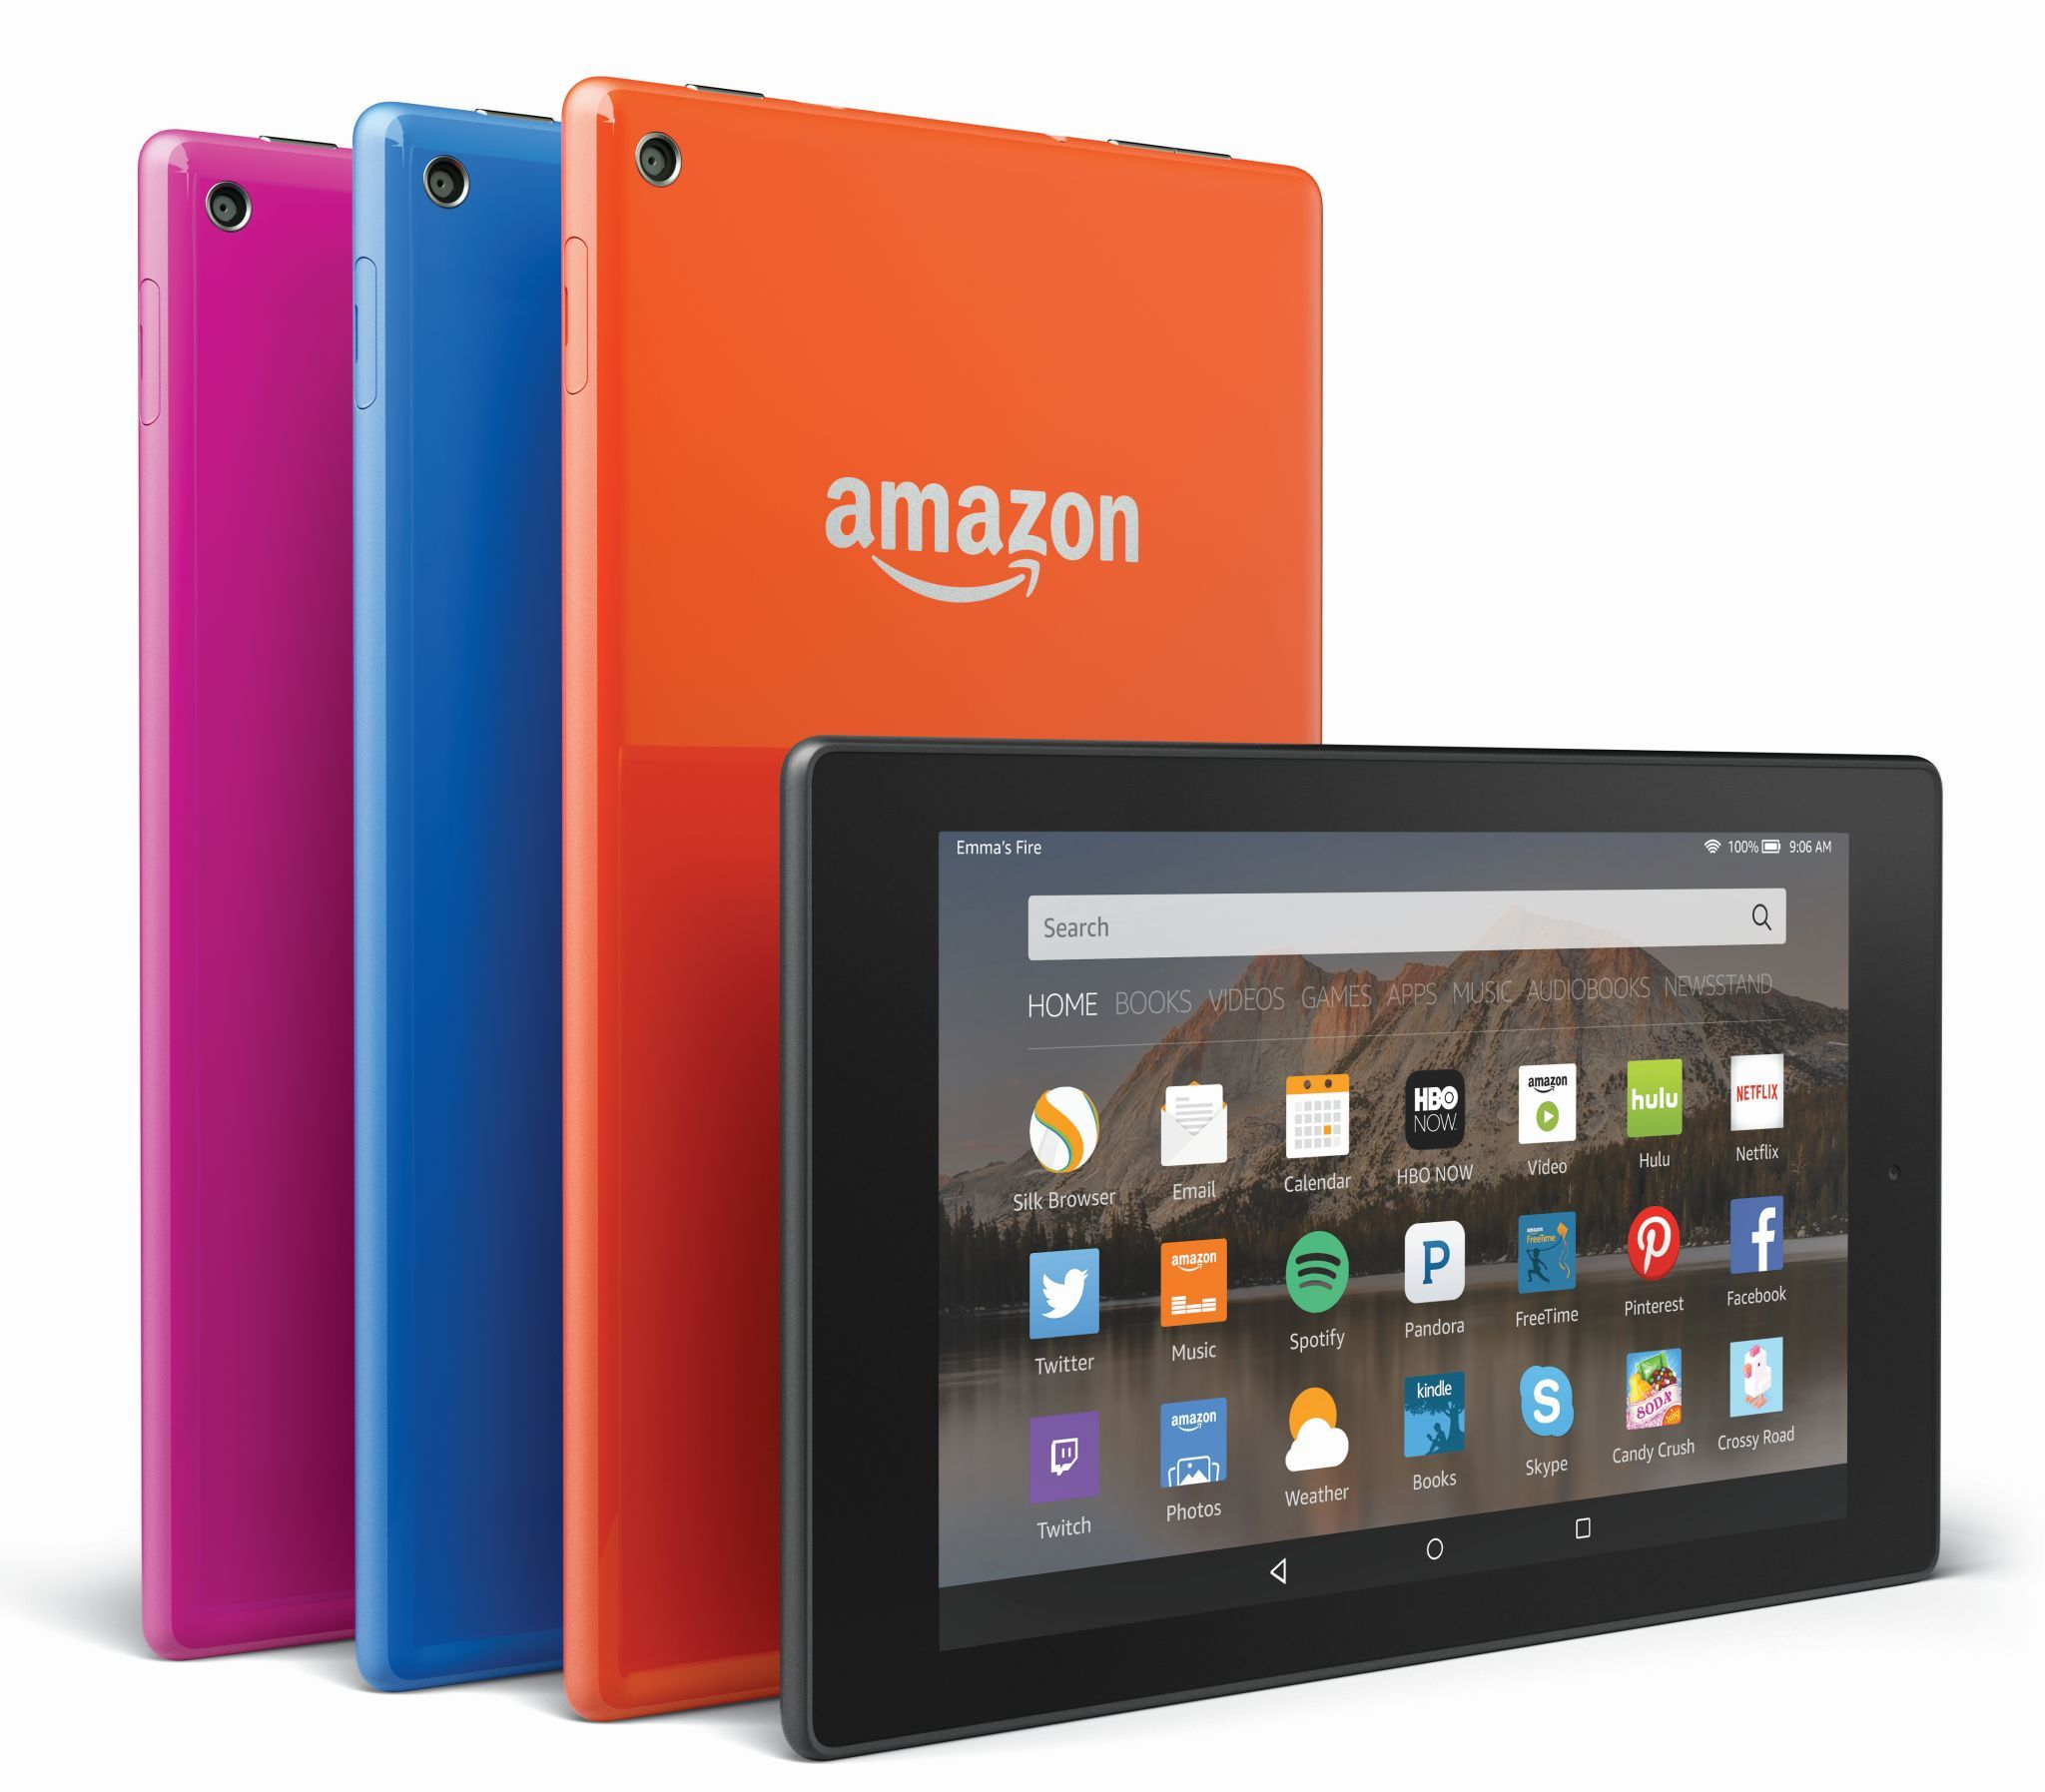 Amazon S New Fire Tablet Lineup Starts With A 7 Inch Model